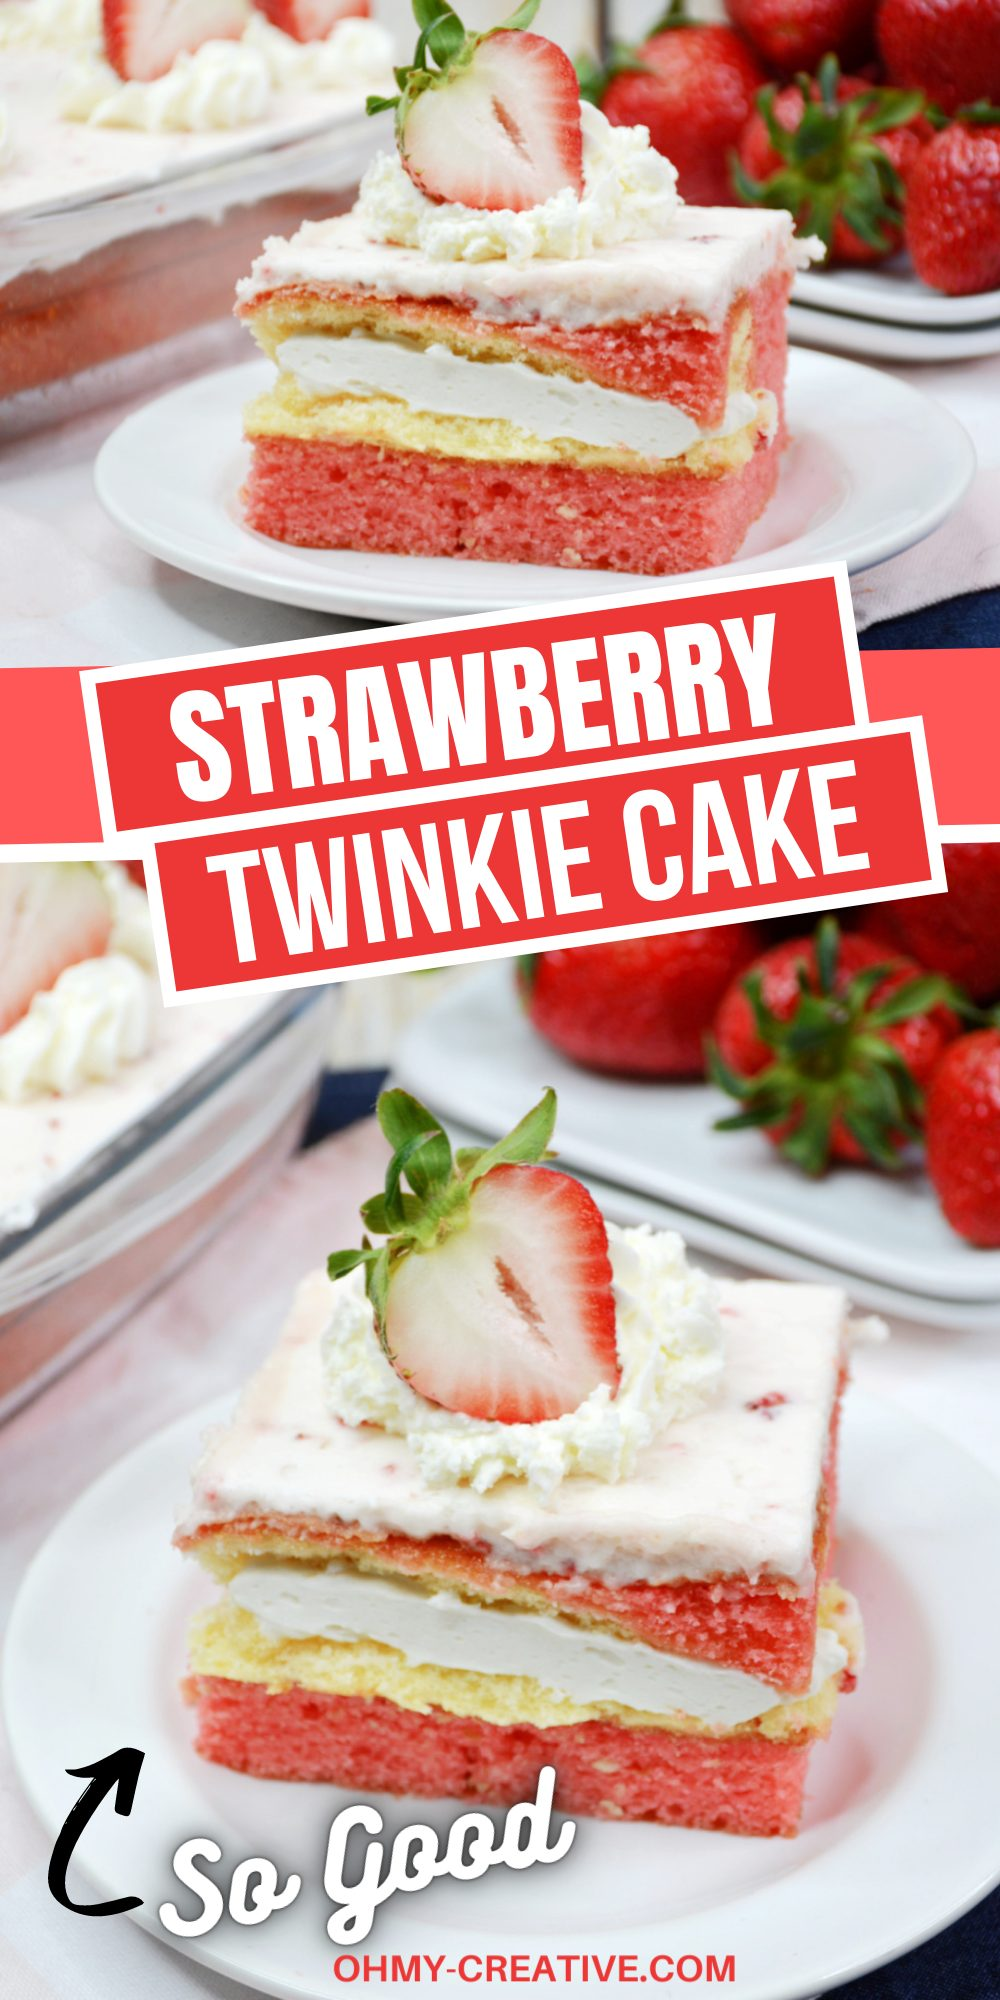 A square slice of strawberry Twinkie cake with homemade frosting and a slice of strawberry on top. The strawberry cake is sitting on a white dessert plate with a dish of strawberries in the background. Photos show the strawberry cake at different angles.